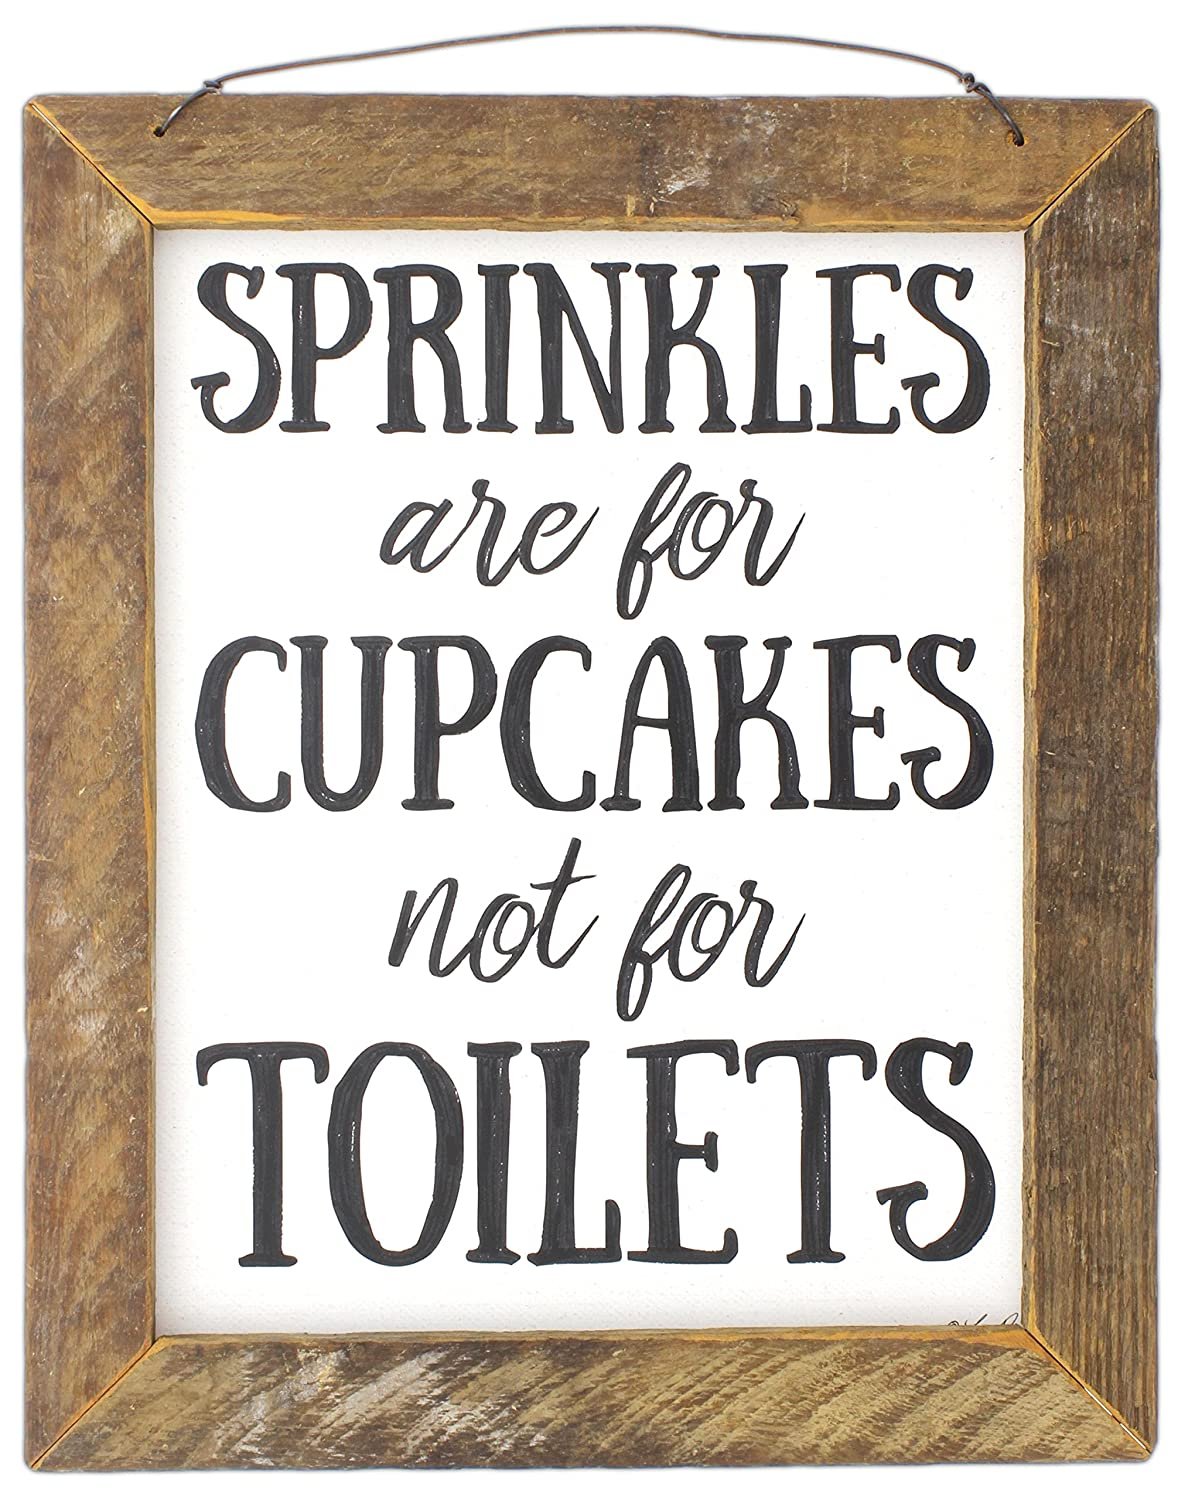 Sprinkles are for Cupcakes Not for Toilets Jan Michaels Rustic Wood Framed Art